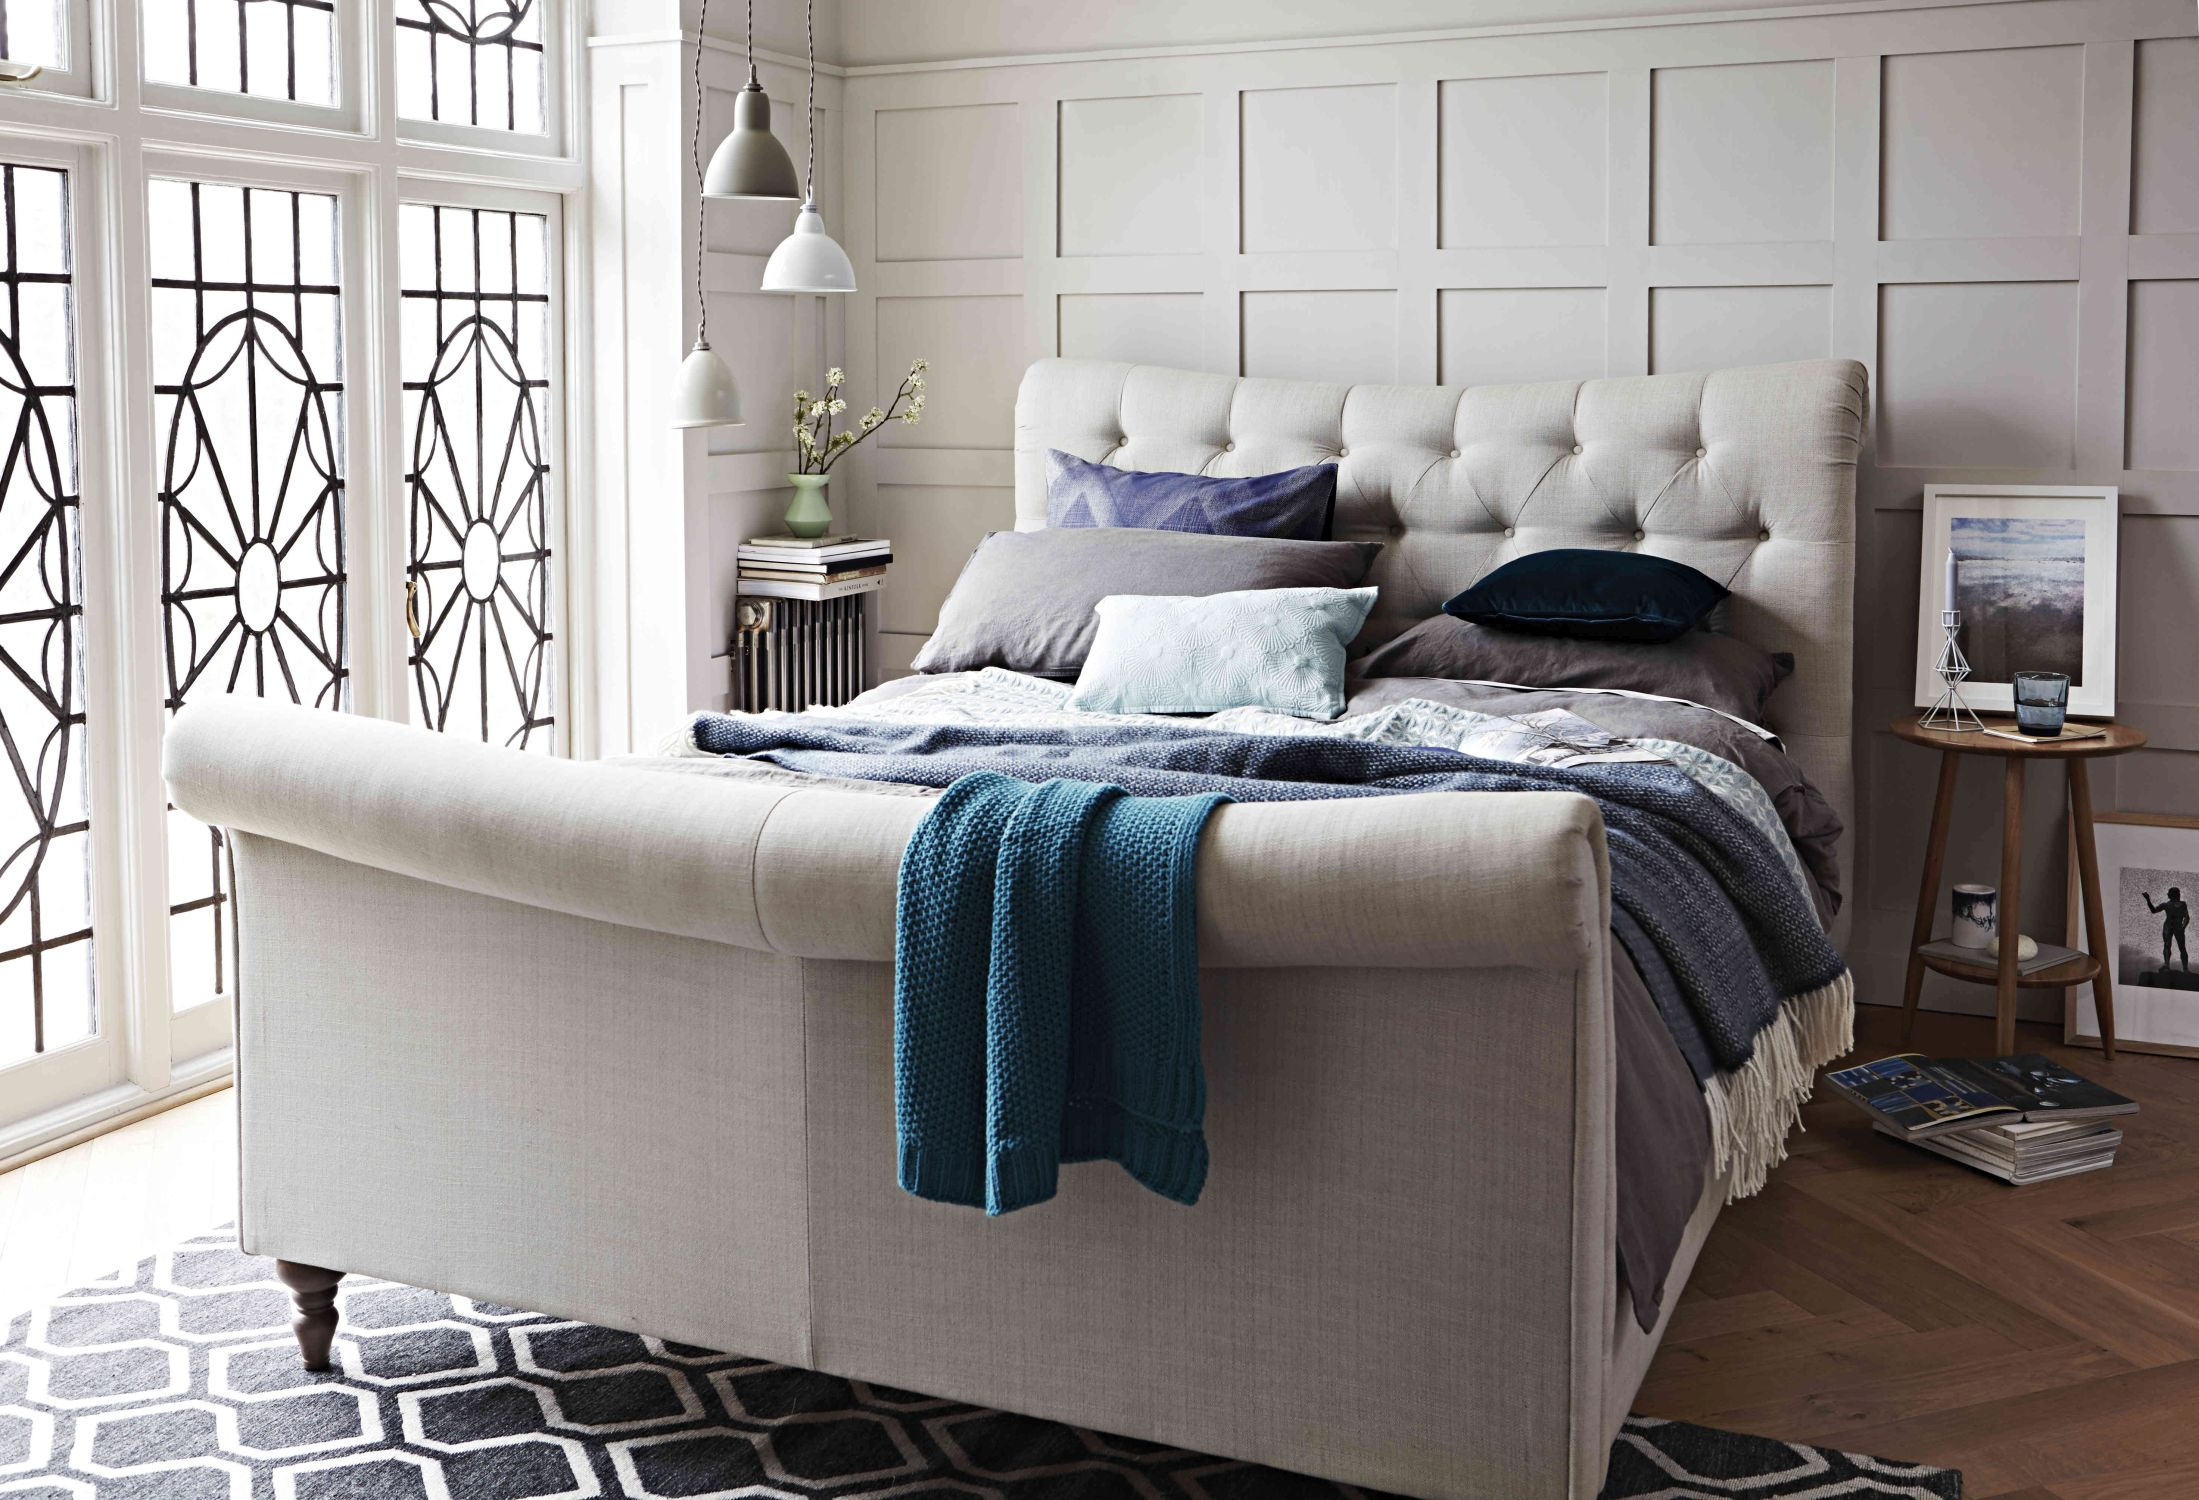 3 dreamy settings for blissful bedrooms - TV3 Xposé